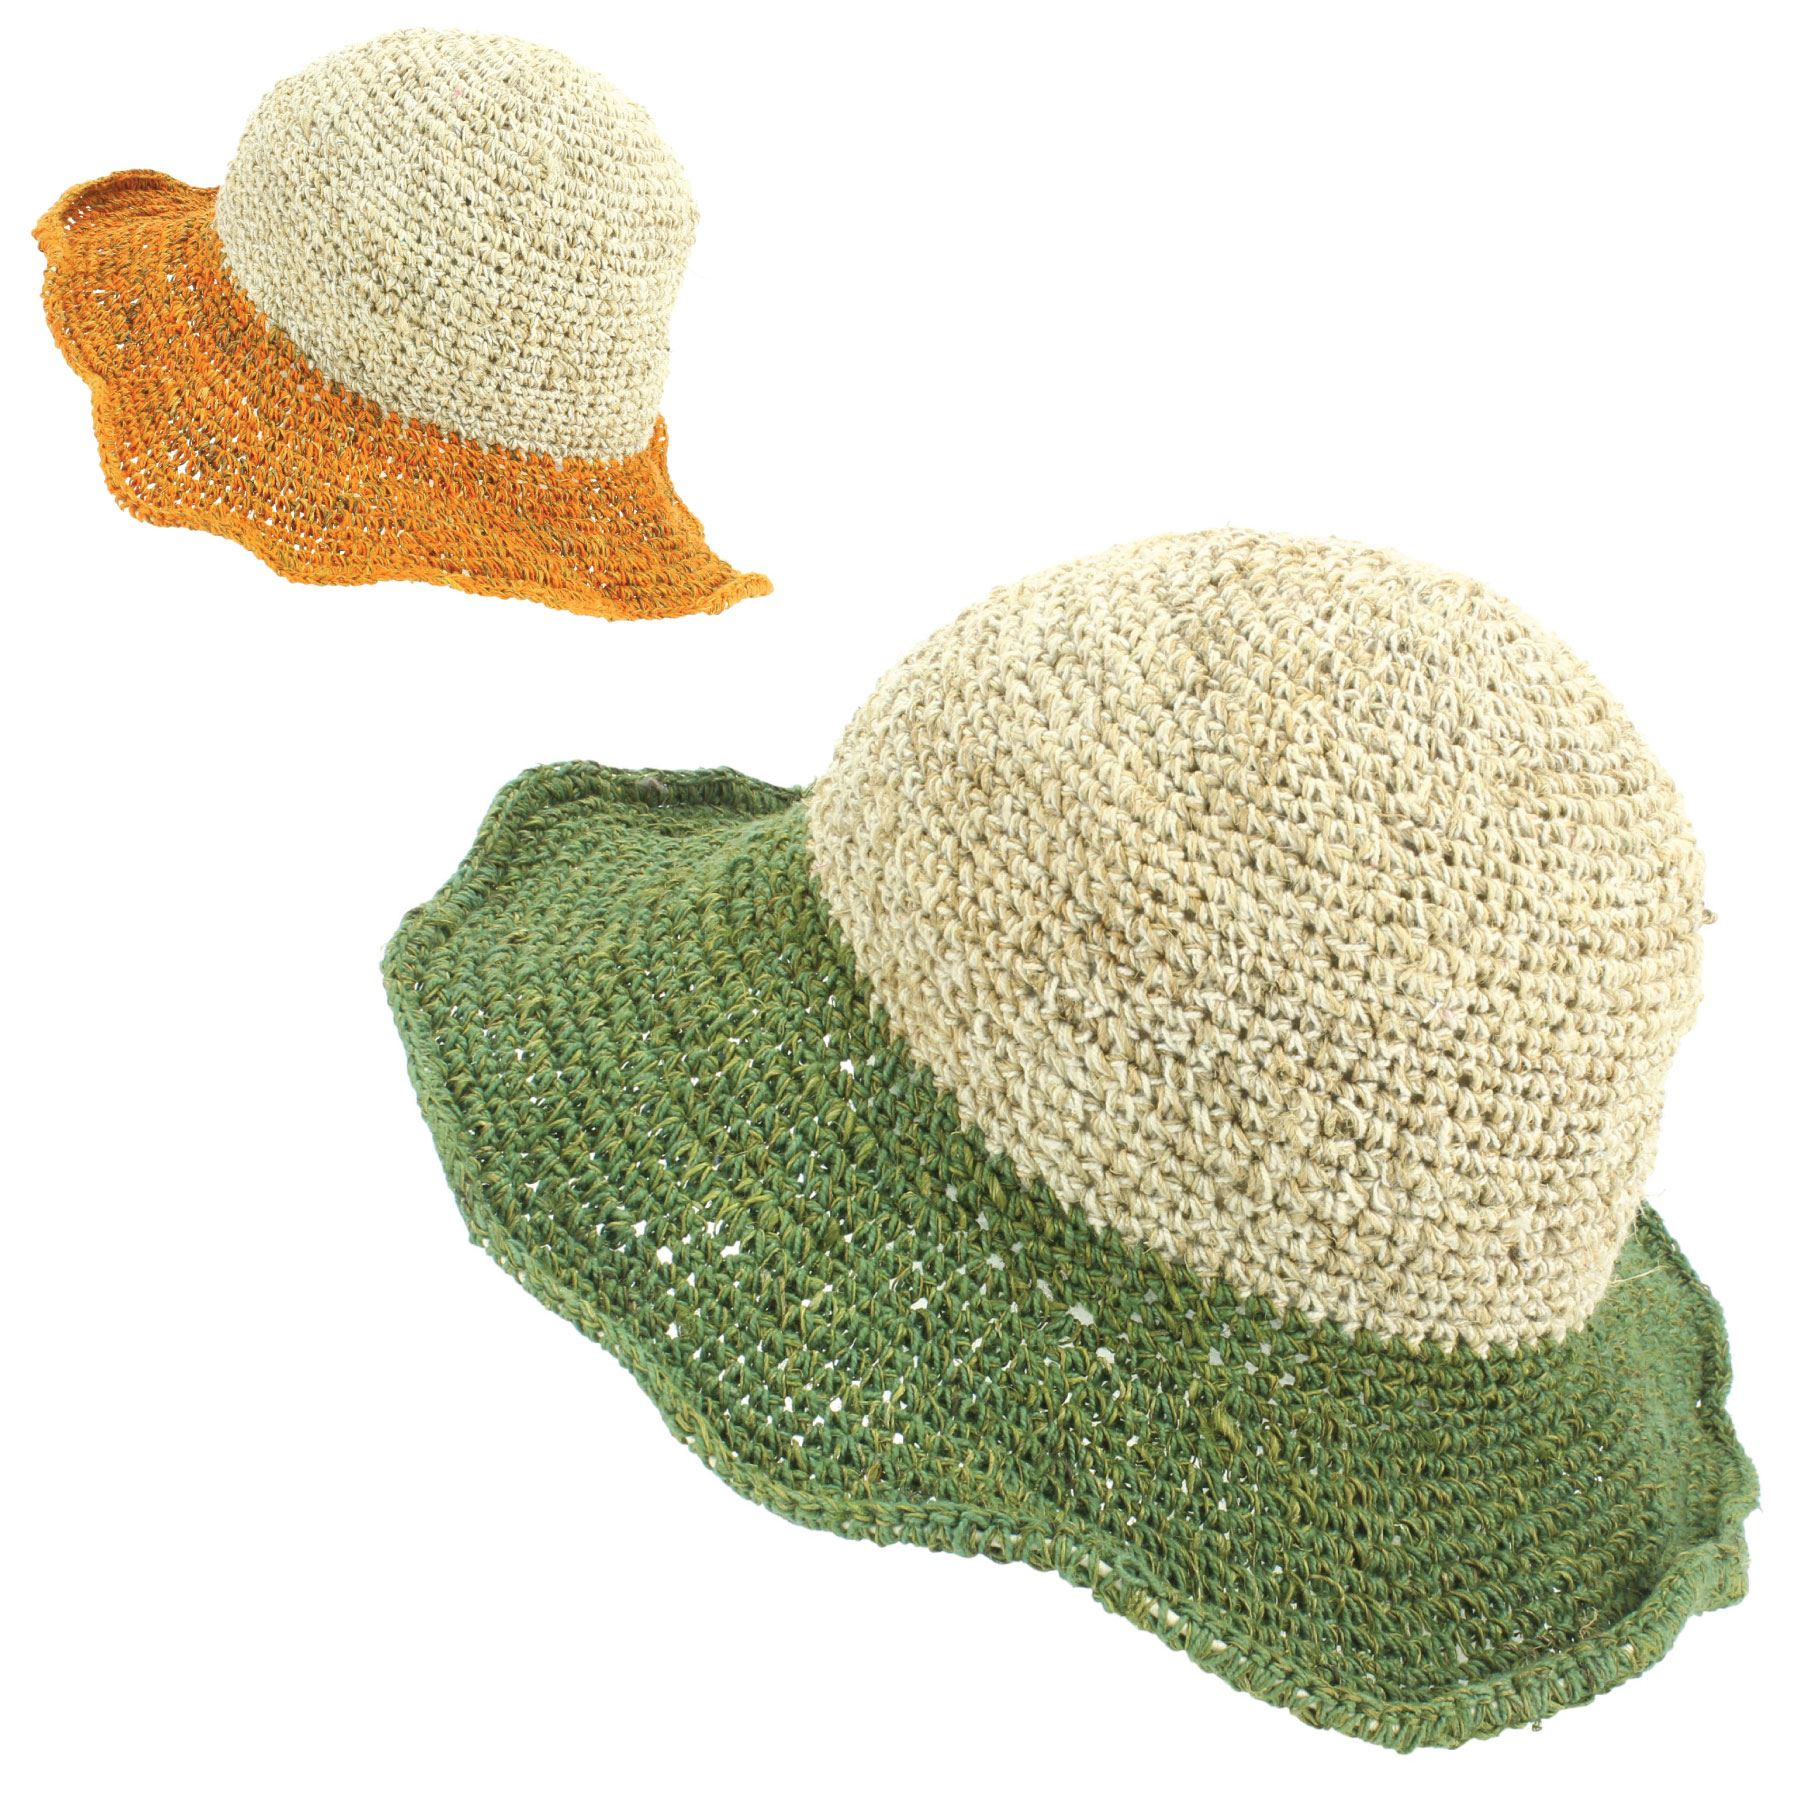 49de174a512225 Details about Sun Hat Hemp Cotton Summer LoudElephant Colour Beach Cap Boho  Hippie